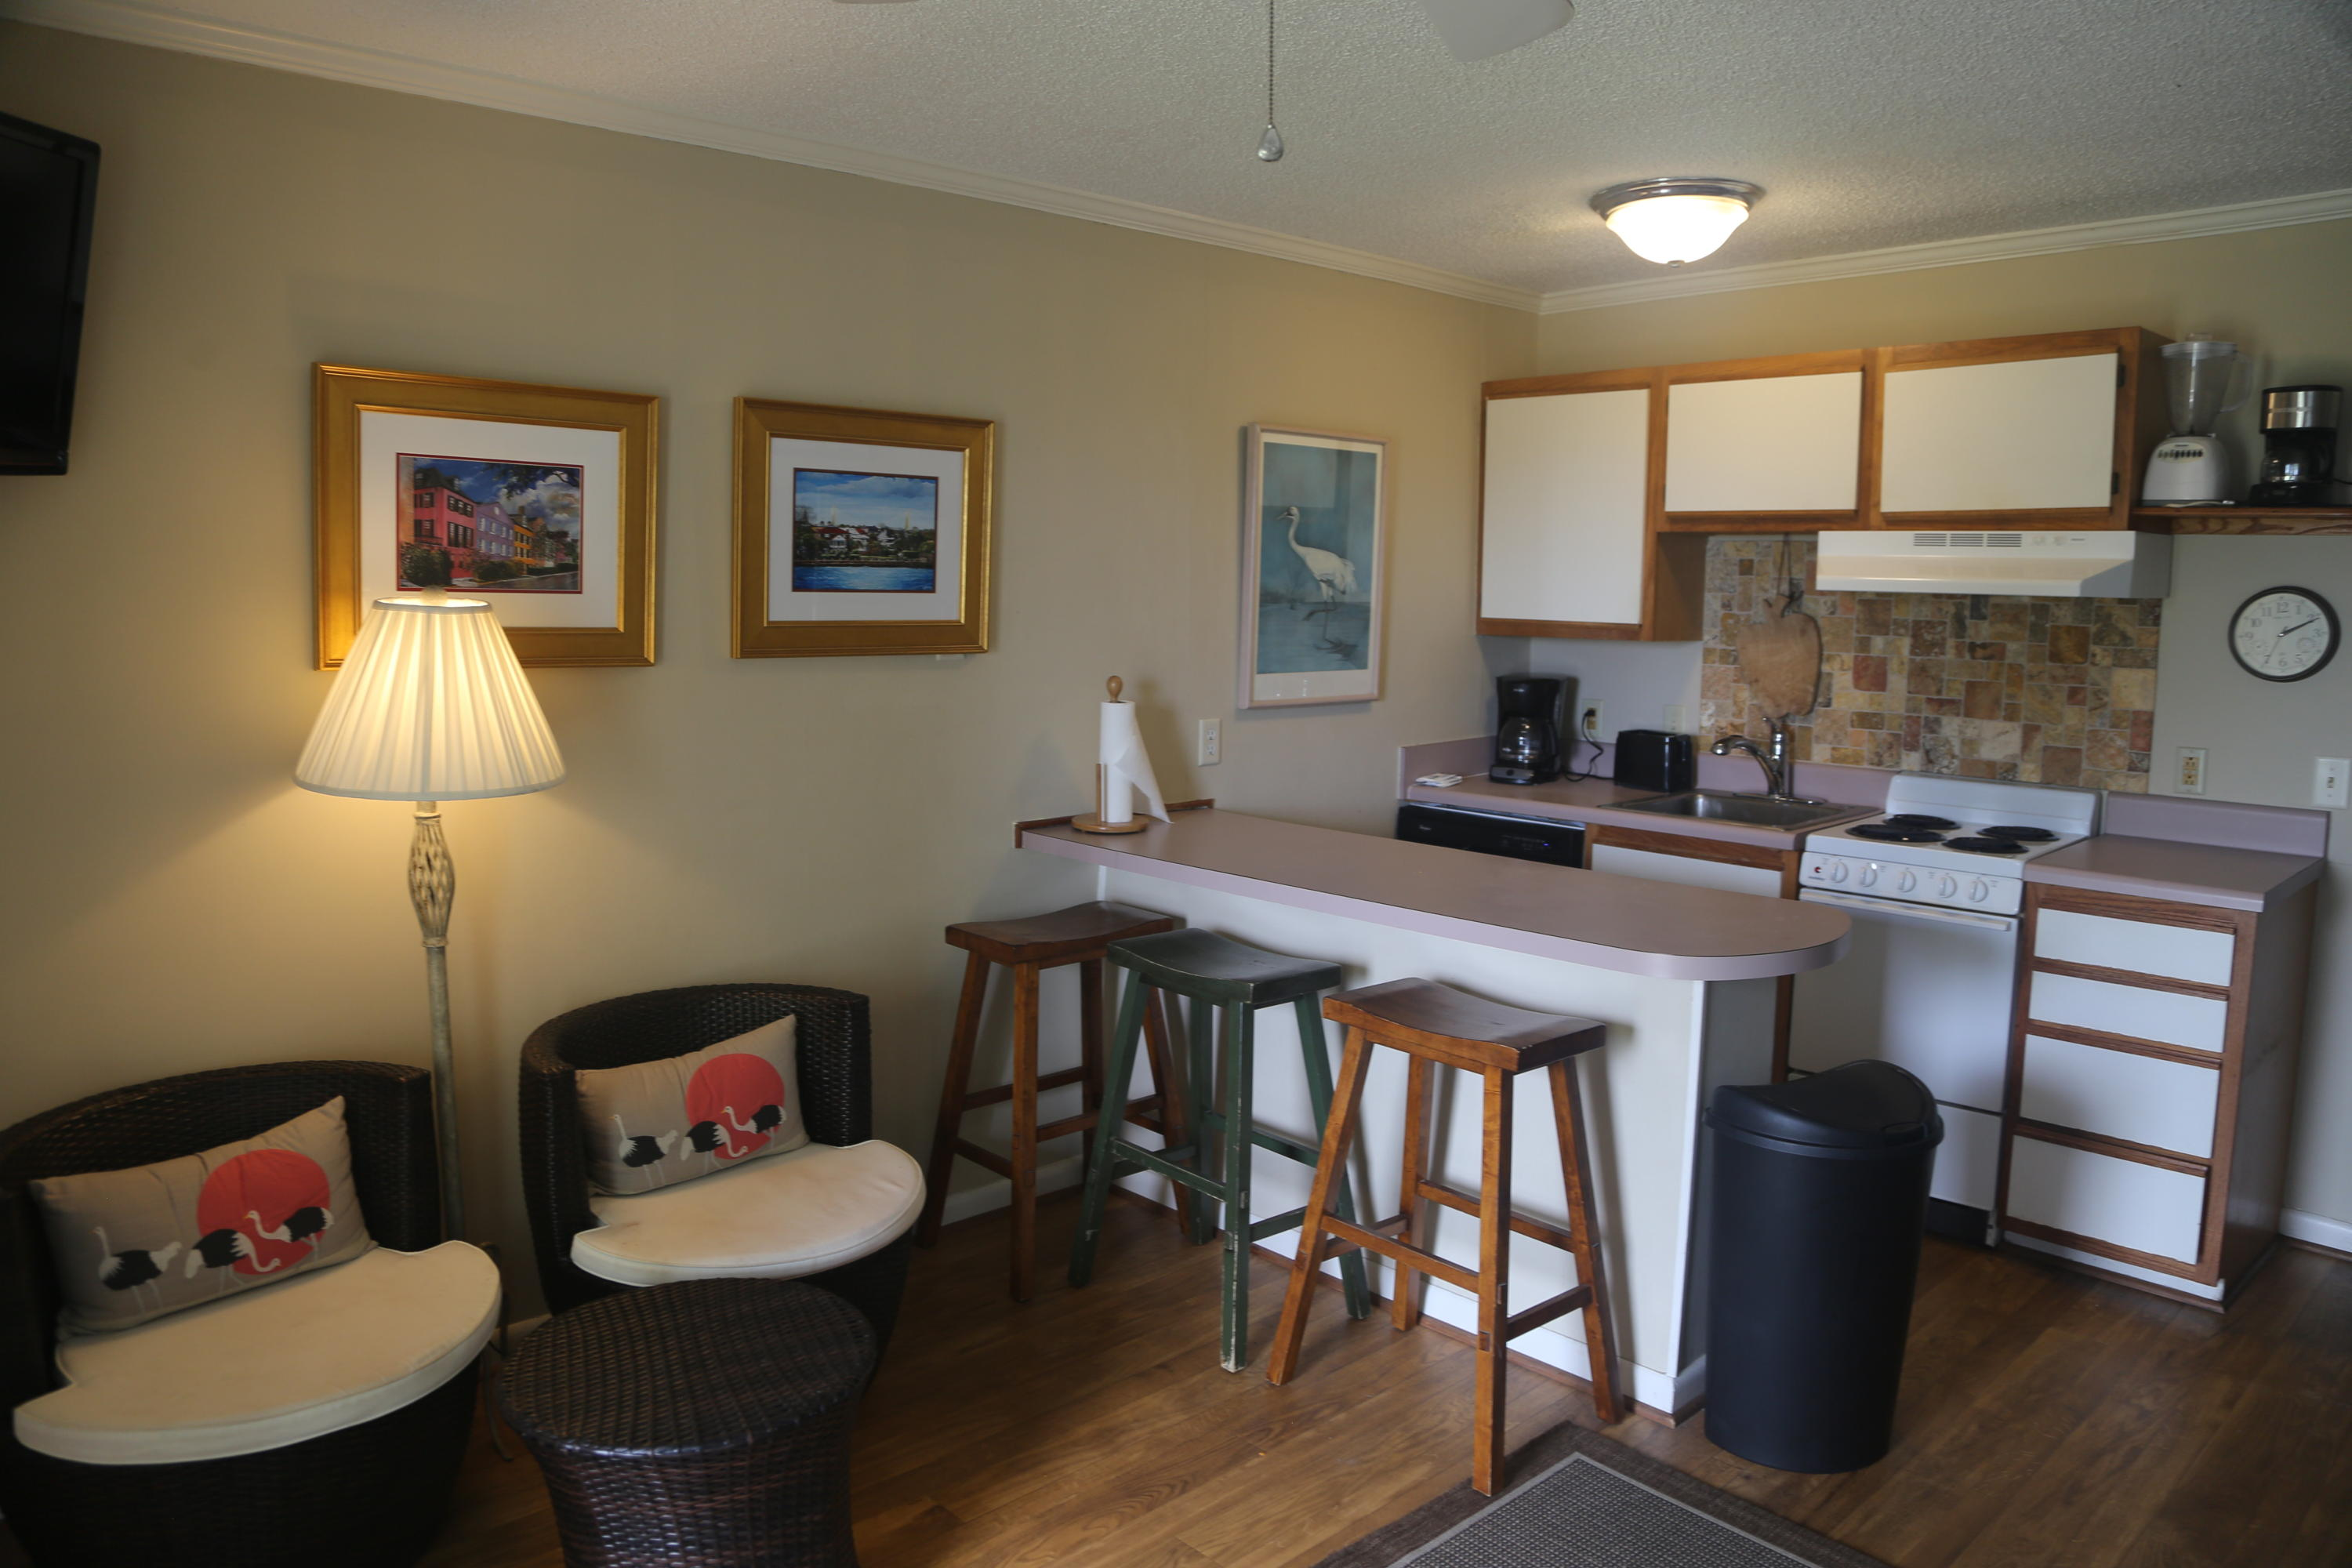 Sea Cabin On The Ocean Homes For Sale - 1300 Ocean, Isle of Palms, SC - 33